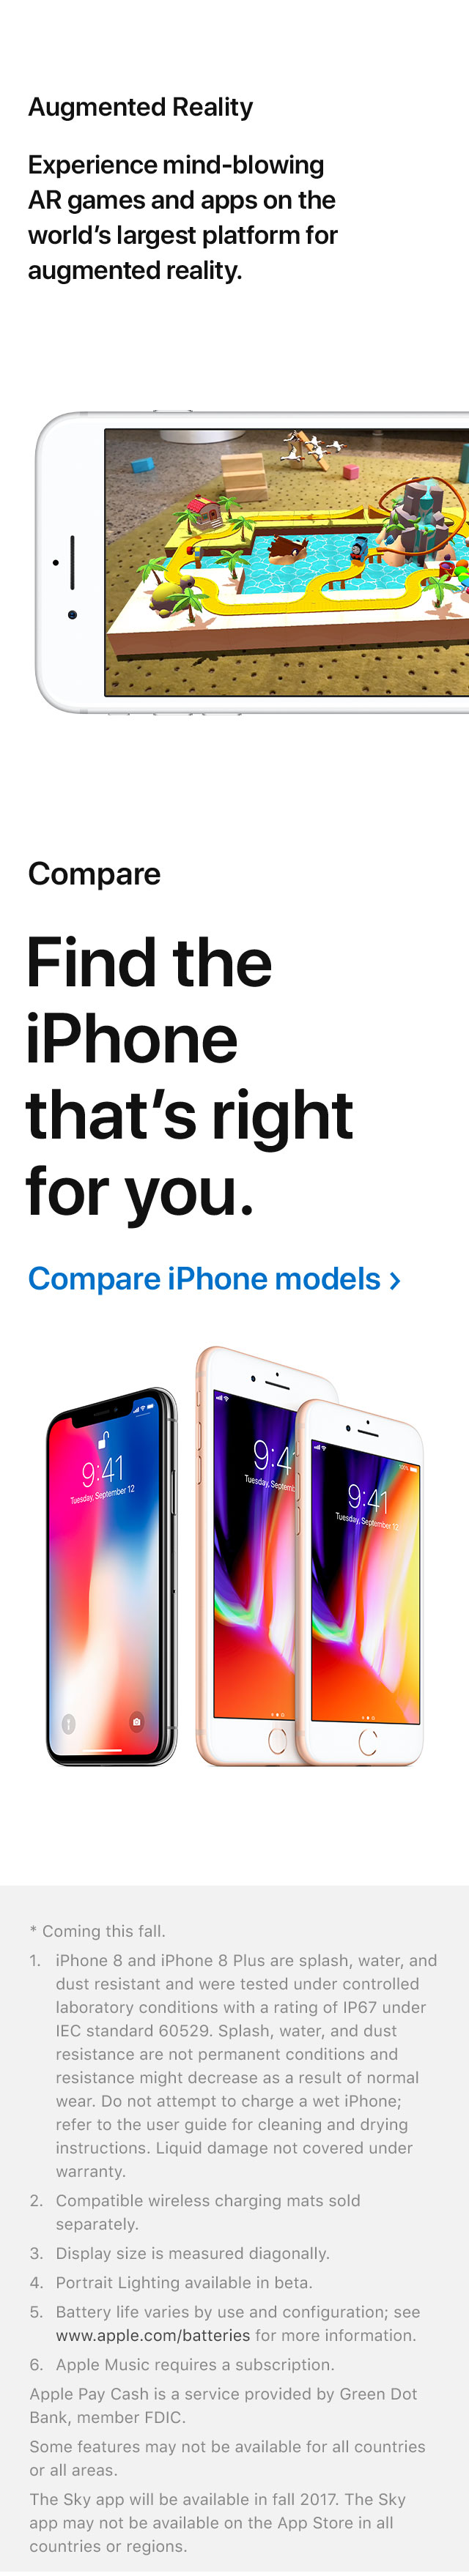 iPhone8 ProductPage1 Mobile